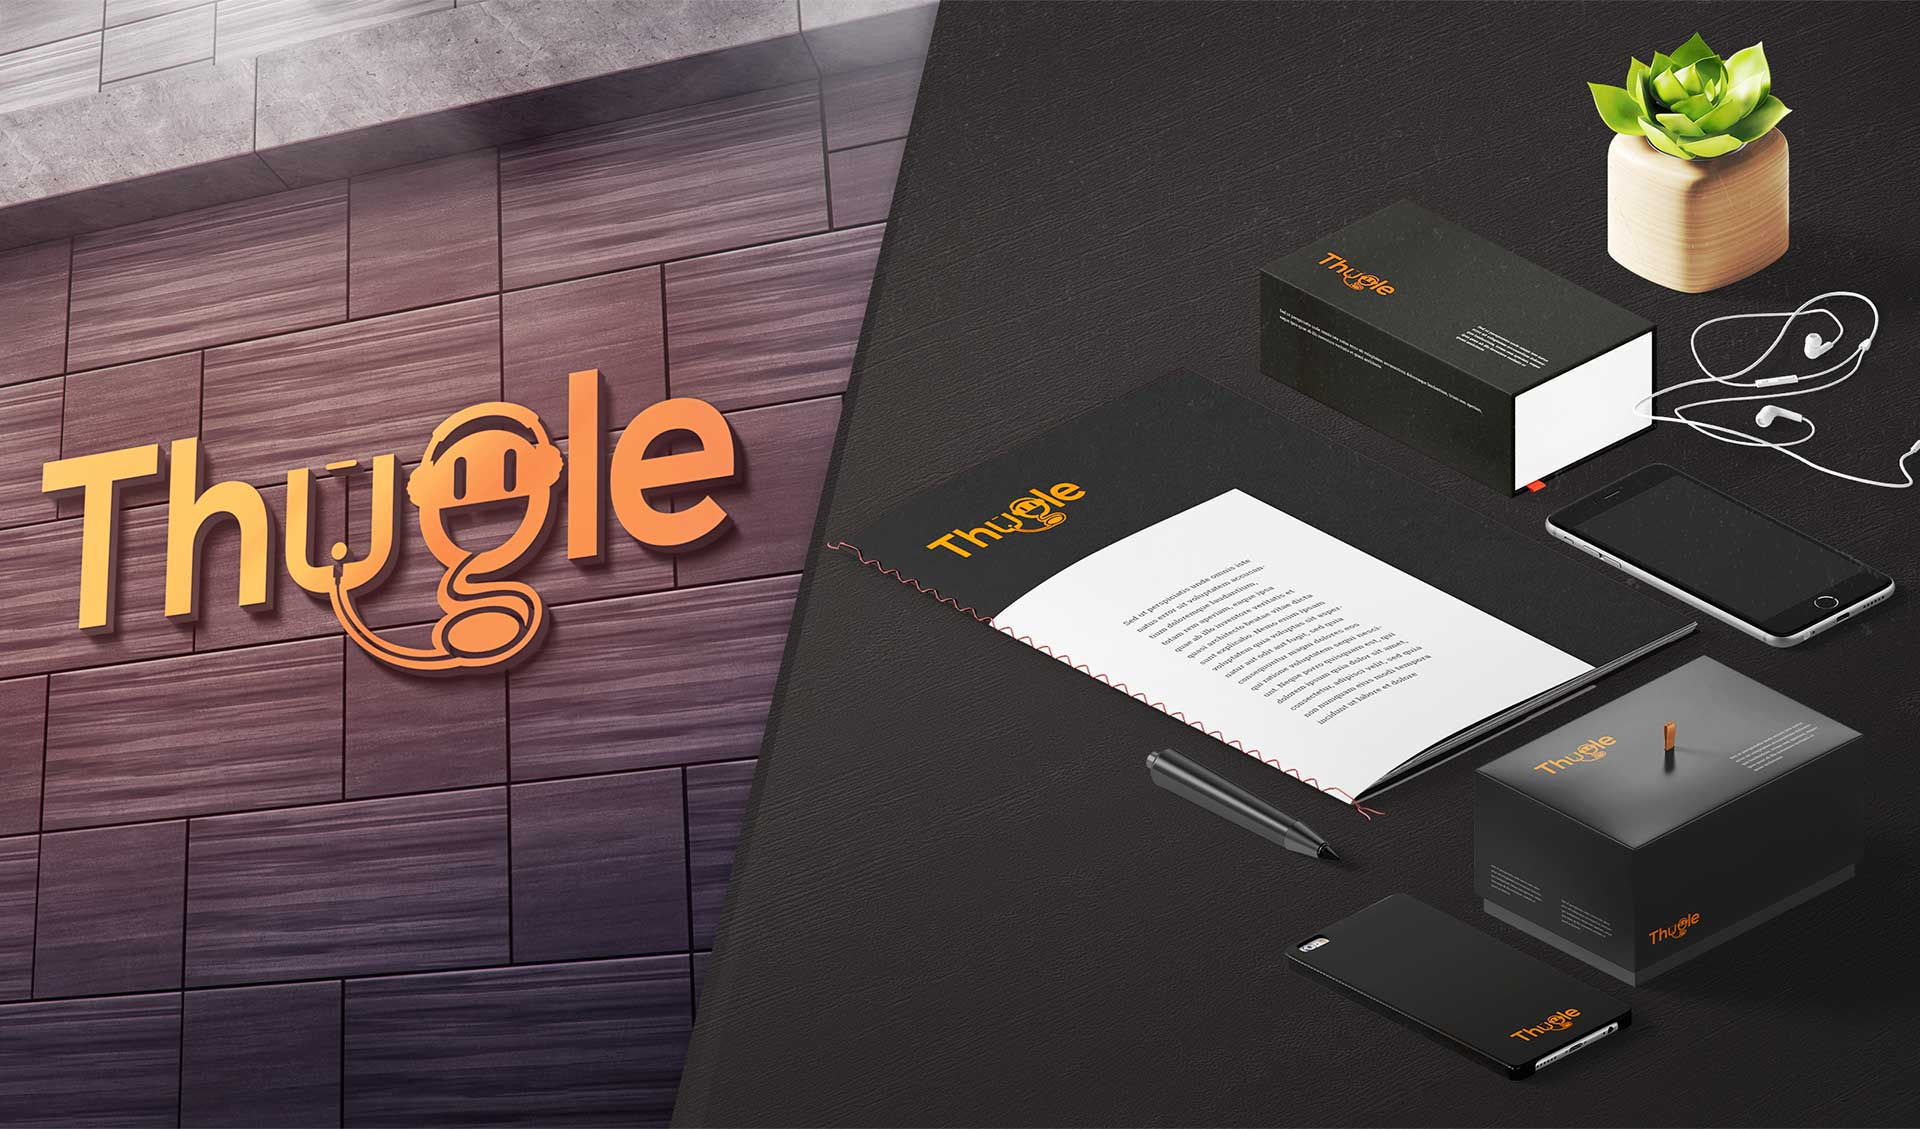 Thugle Logo with Product Design